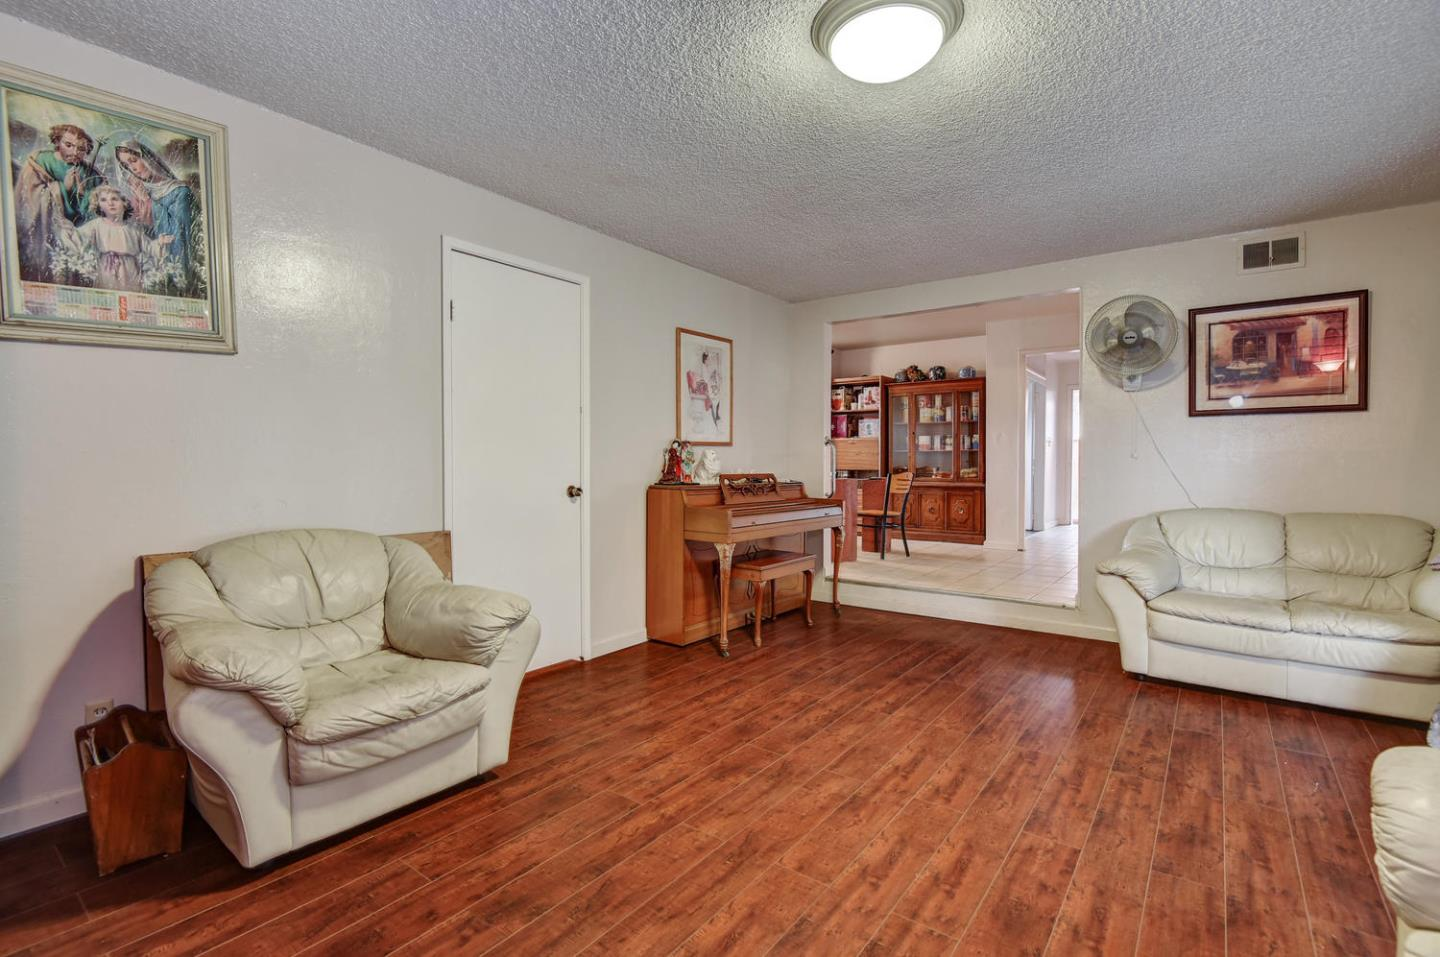 Additional photo for property listing at 264 Ketchum Drive  San Jose, California 95127 United States